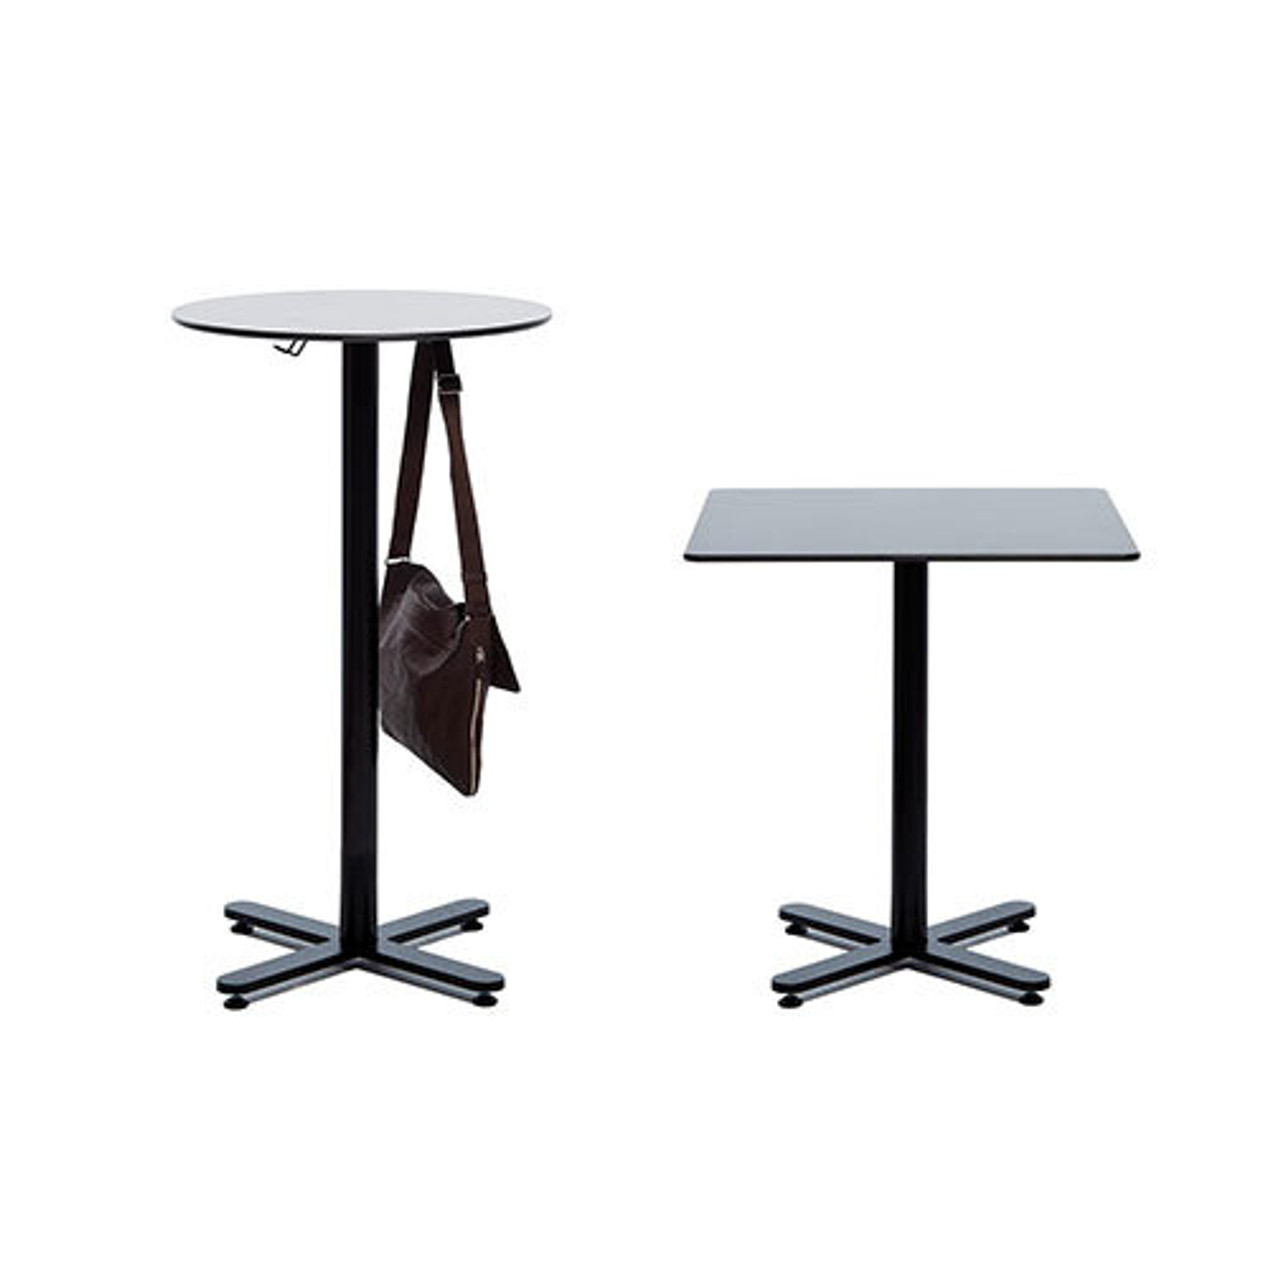 Magnuson Oxi Bistrot Tables - Outdoor